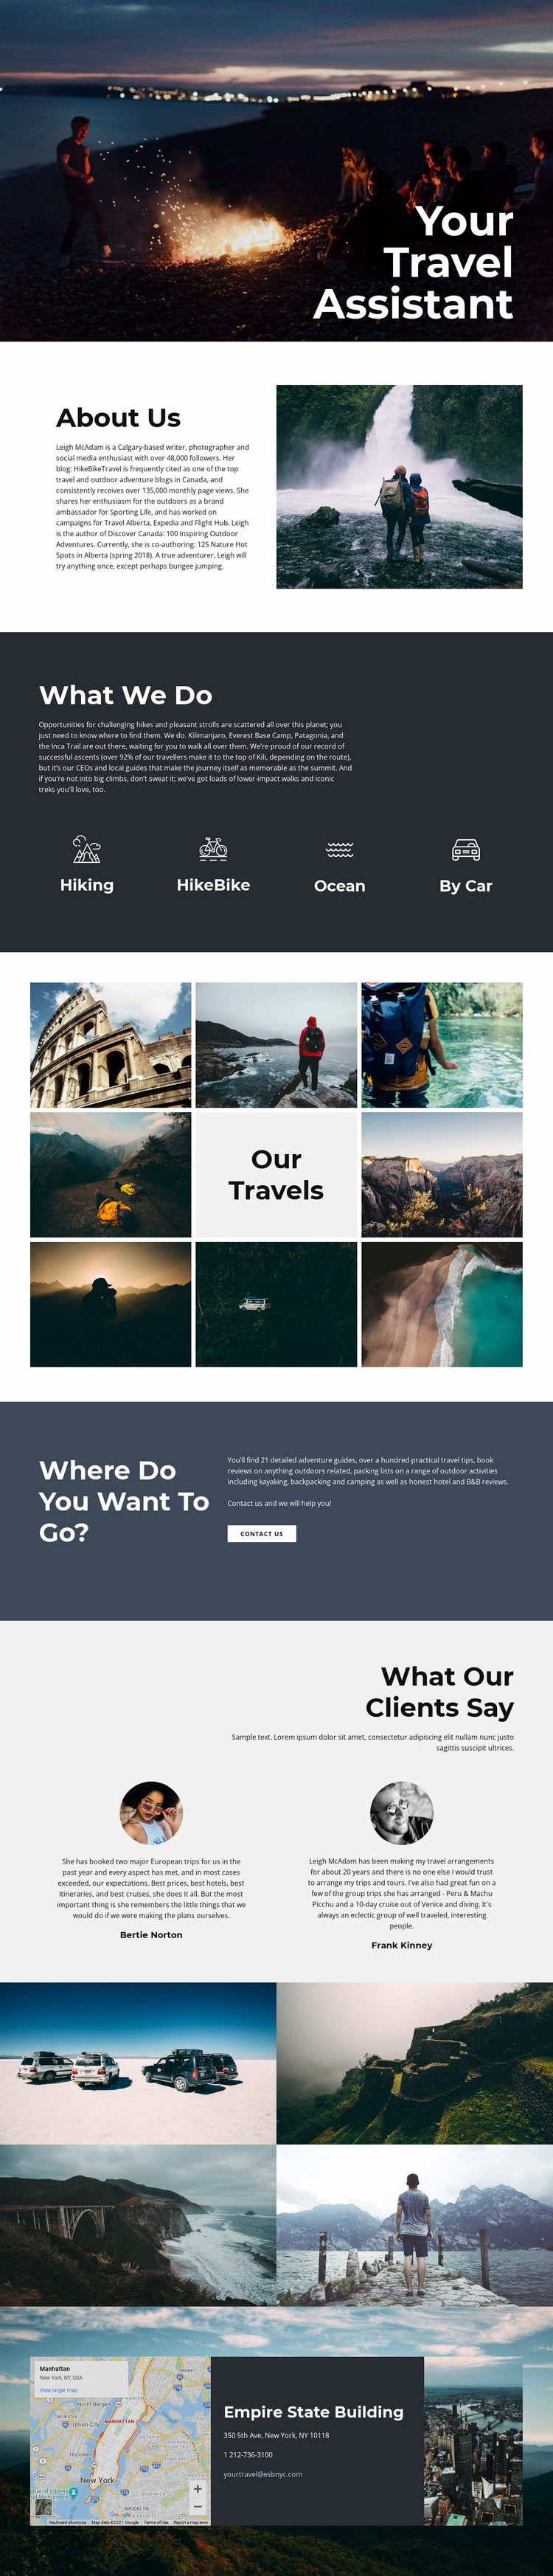 Travel Assistant Website Template